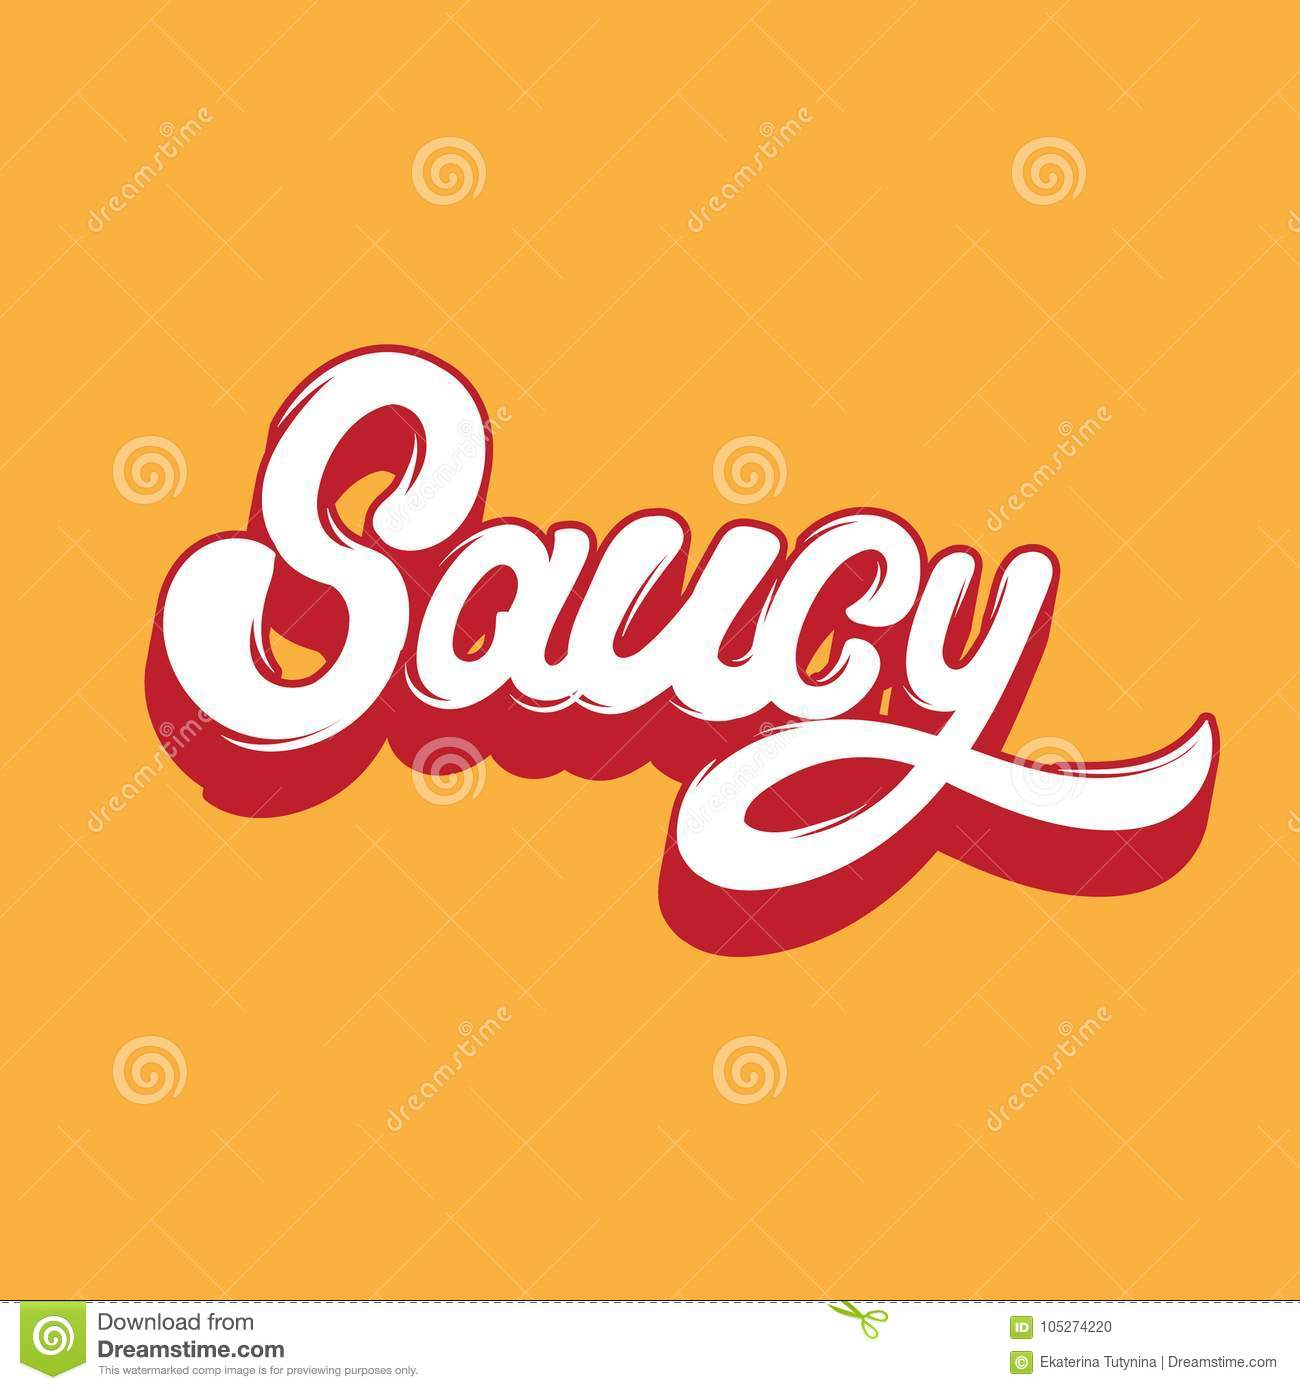 Saucy Cartoons Illustrations Amp Vector Stock Images 314 Pictures To Download From